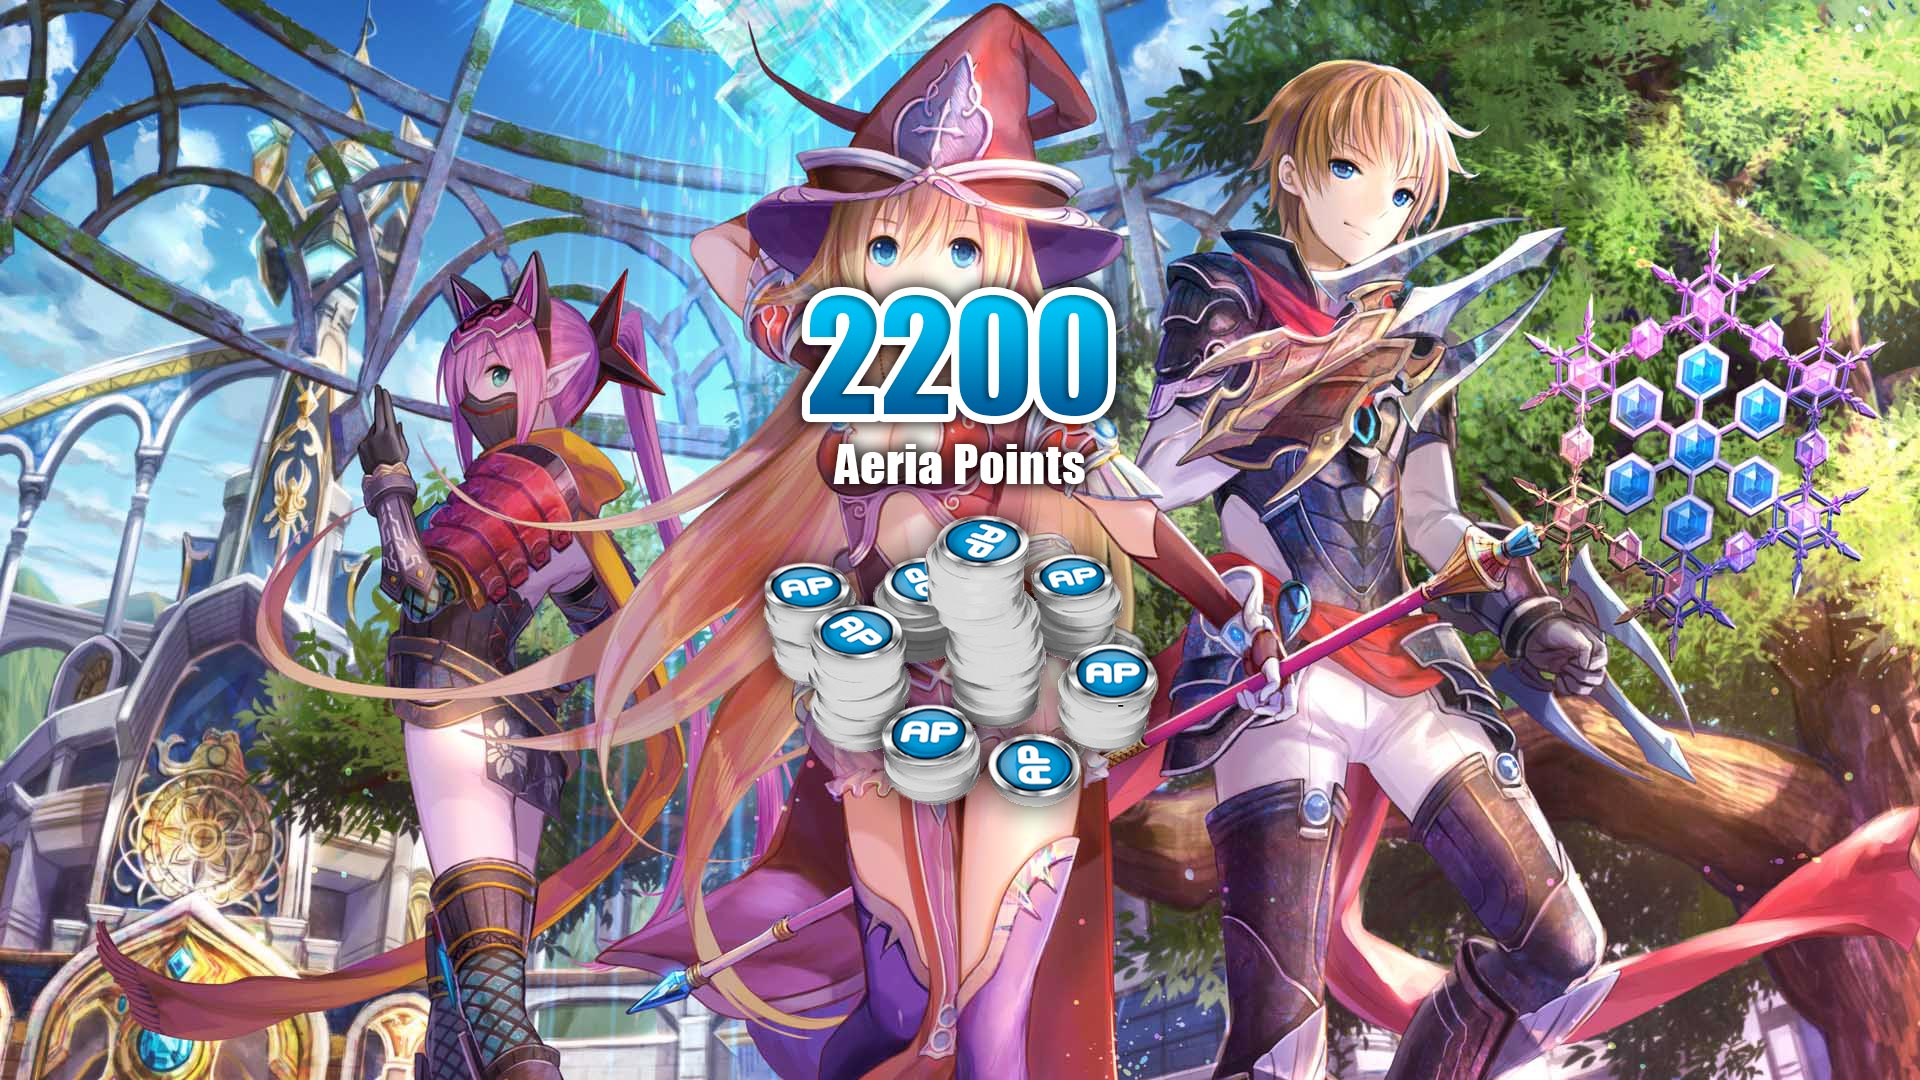 Aura Kingdom - 2.200 Aeria Points cover